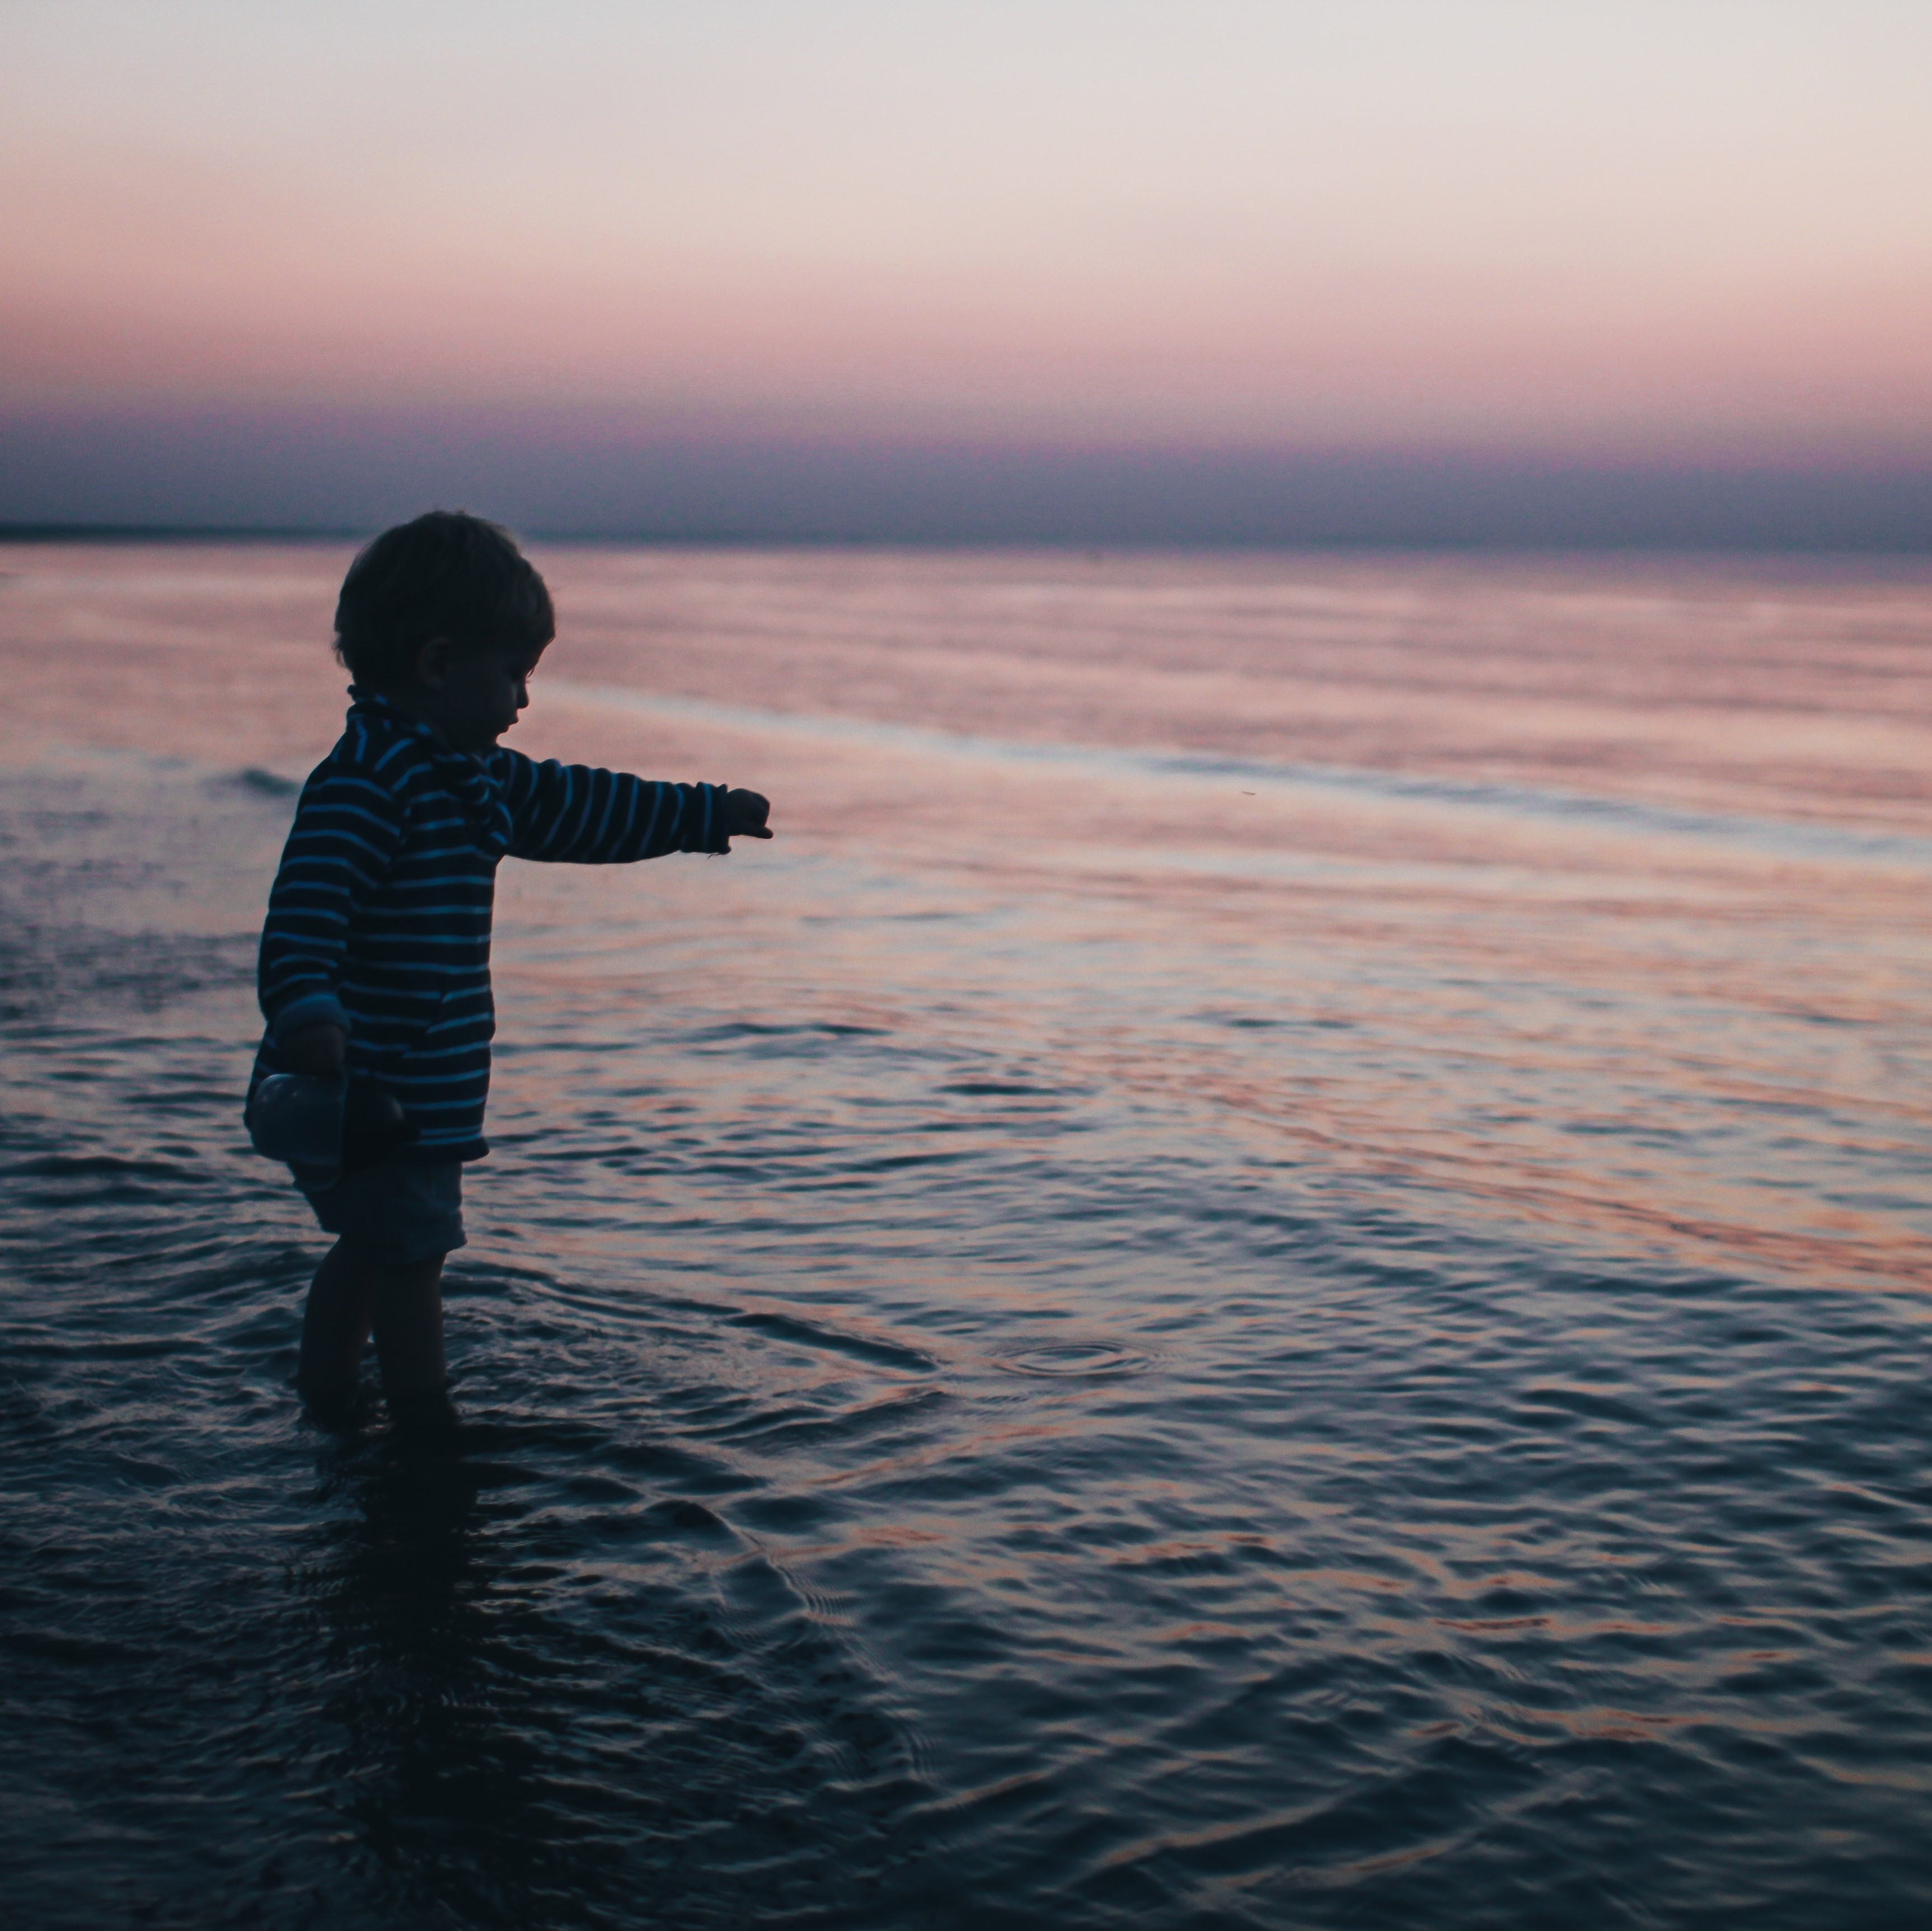 Children's meditation and mindfulness from birth to teen